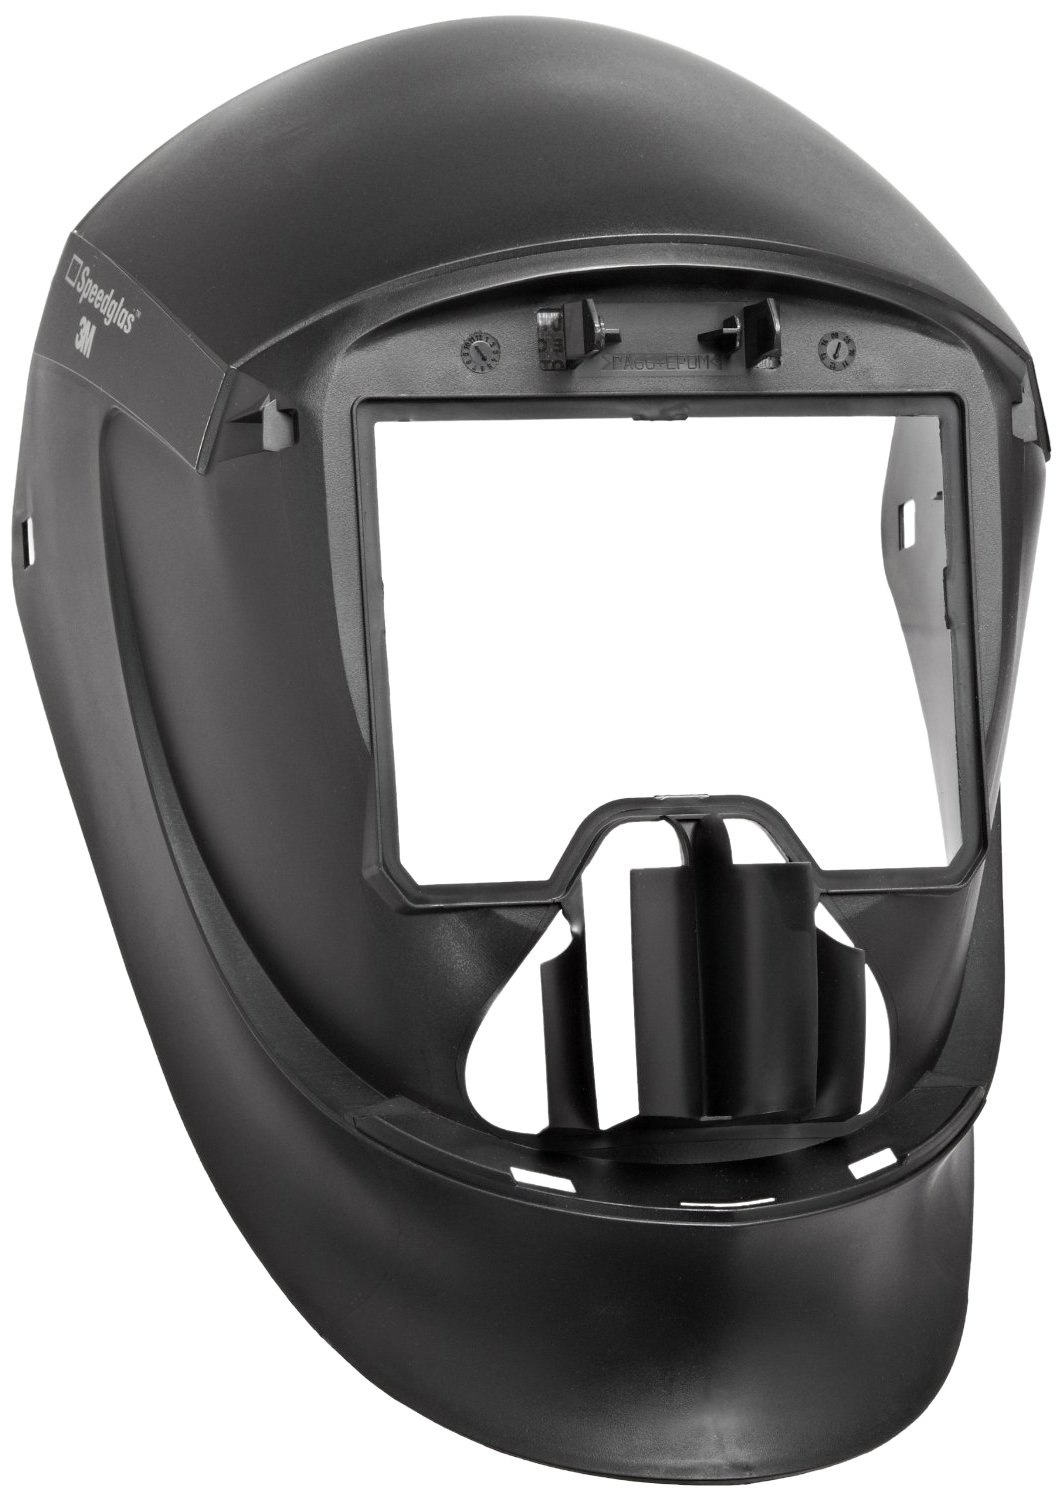 3M Speedglas Welding Helmet Inner Shell 9000, Welding Safety 04-0112-00